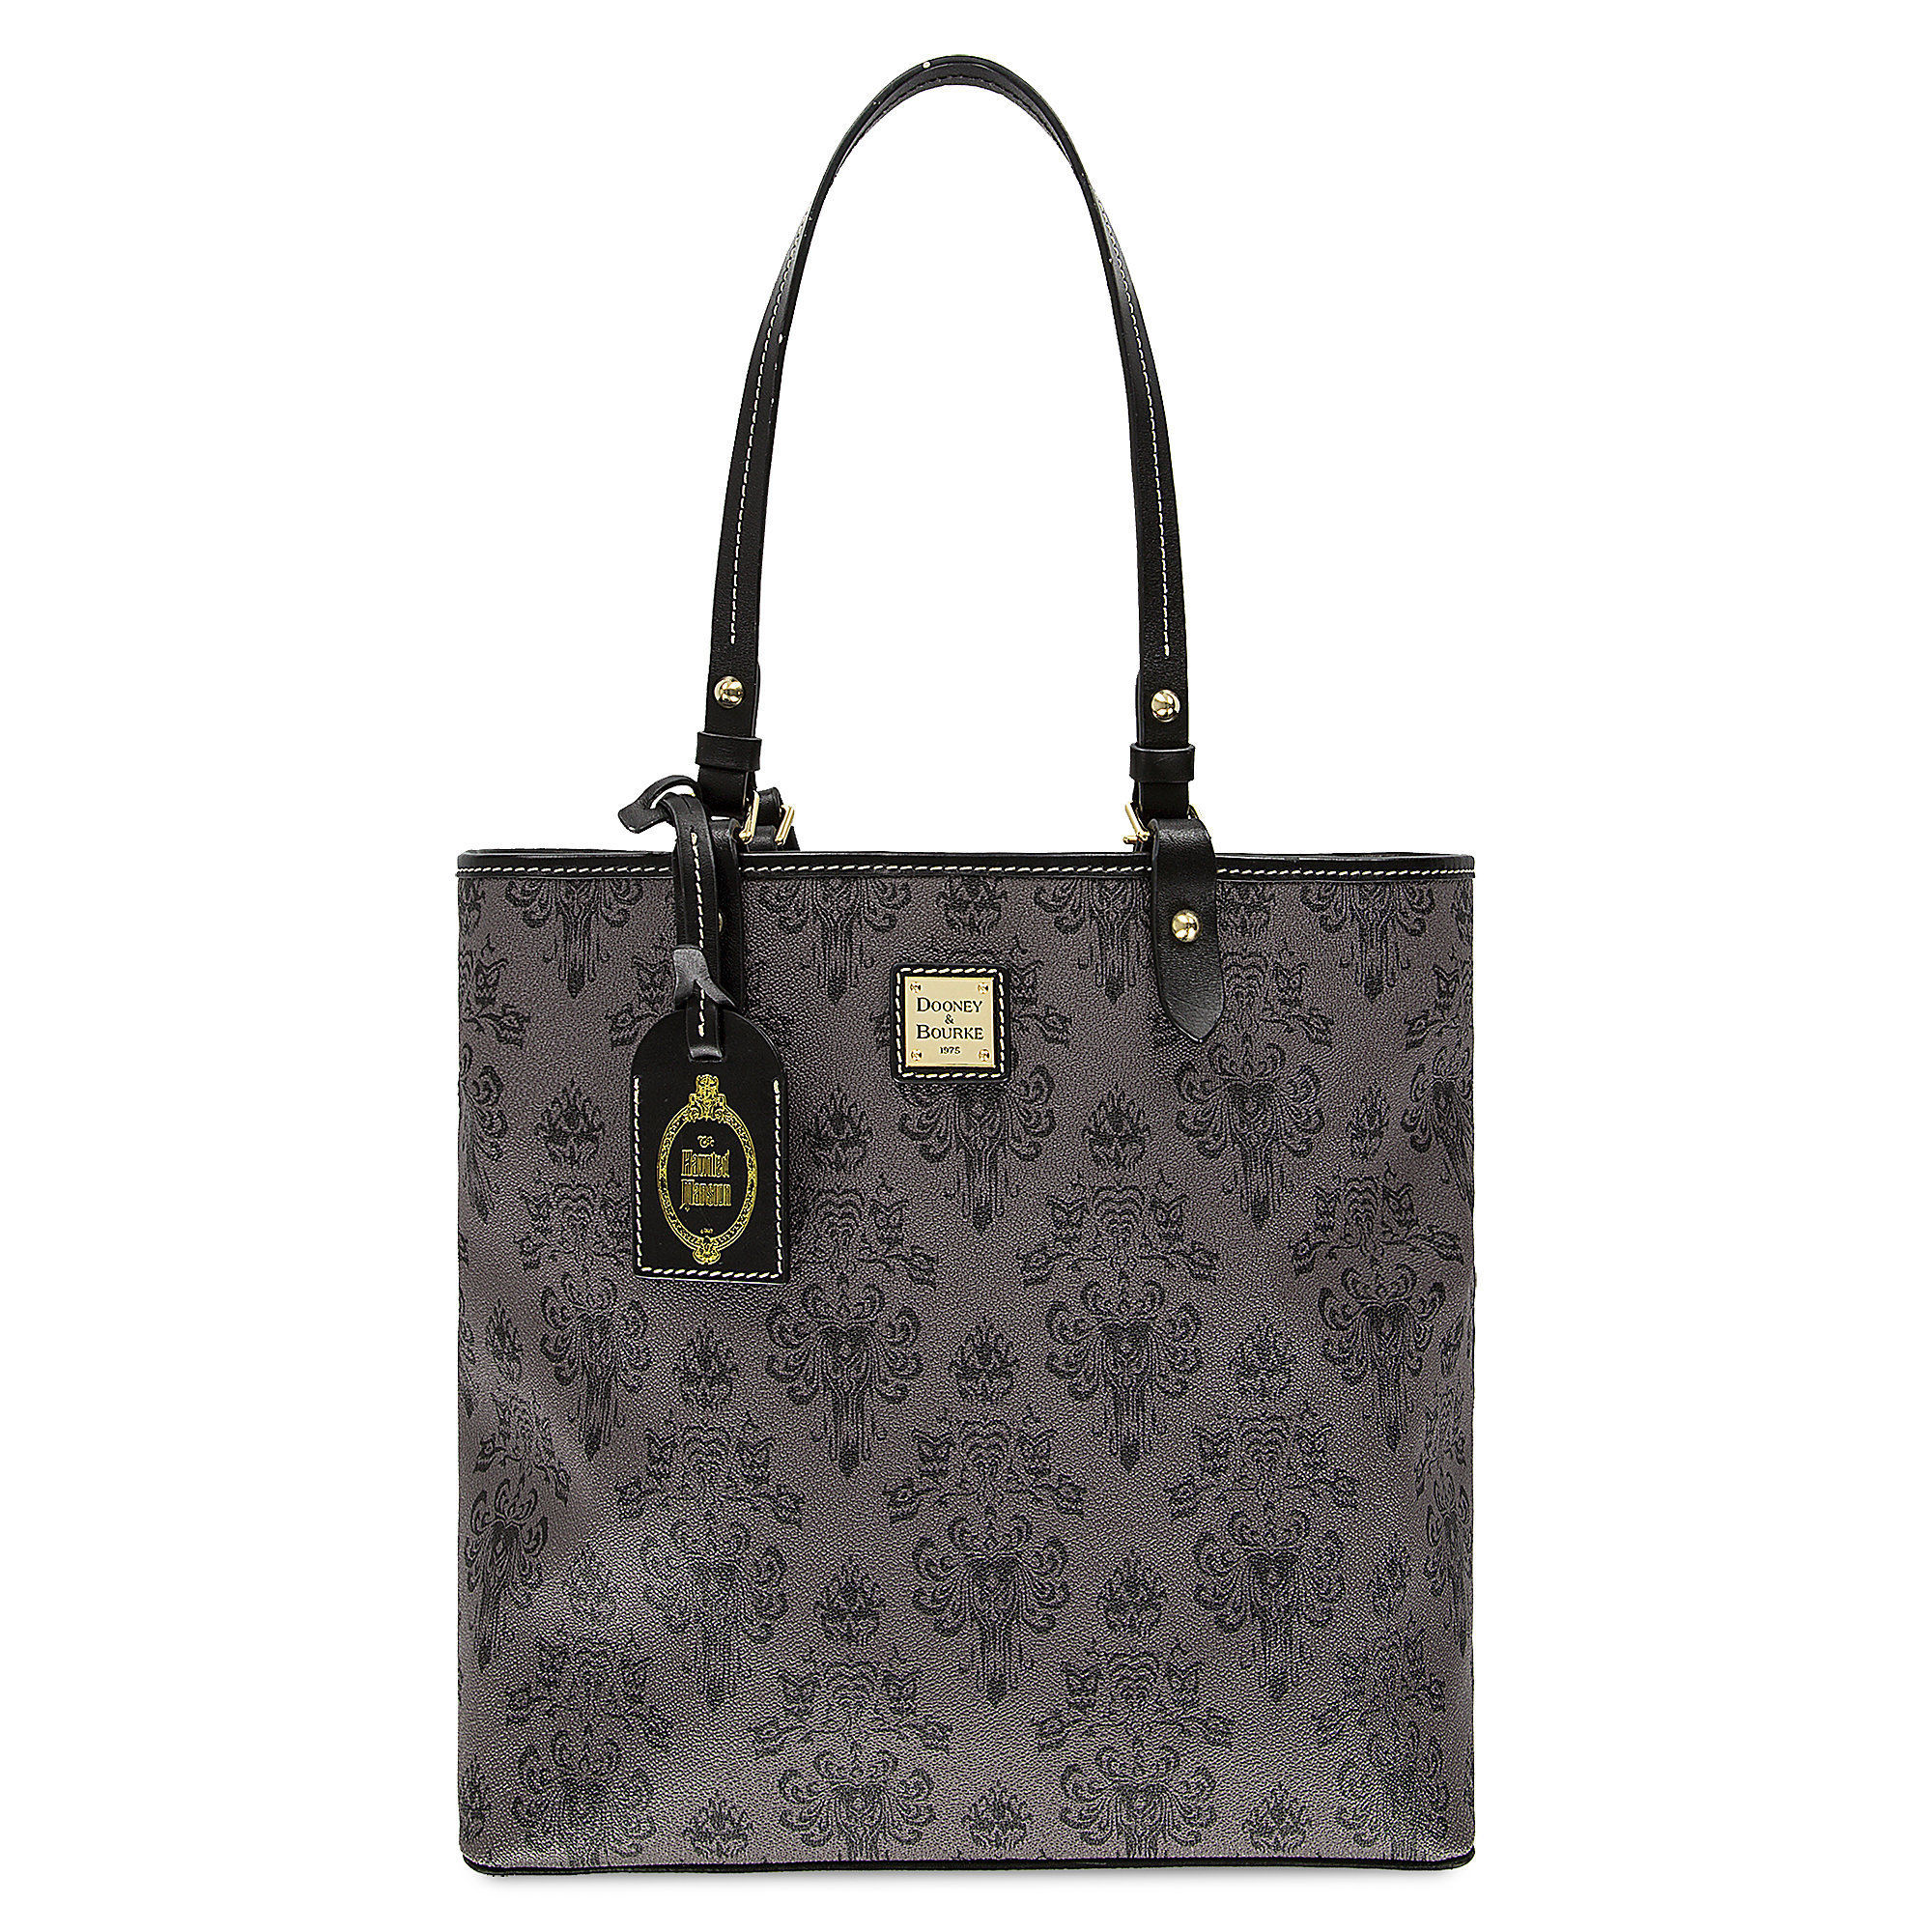 Product Image of The Haunted Mansion Tote by Dooney & Bourke # 1